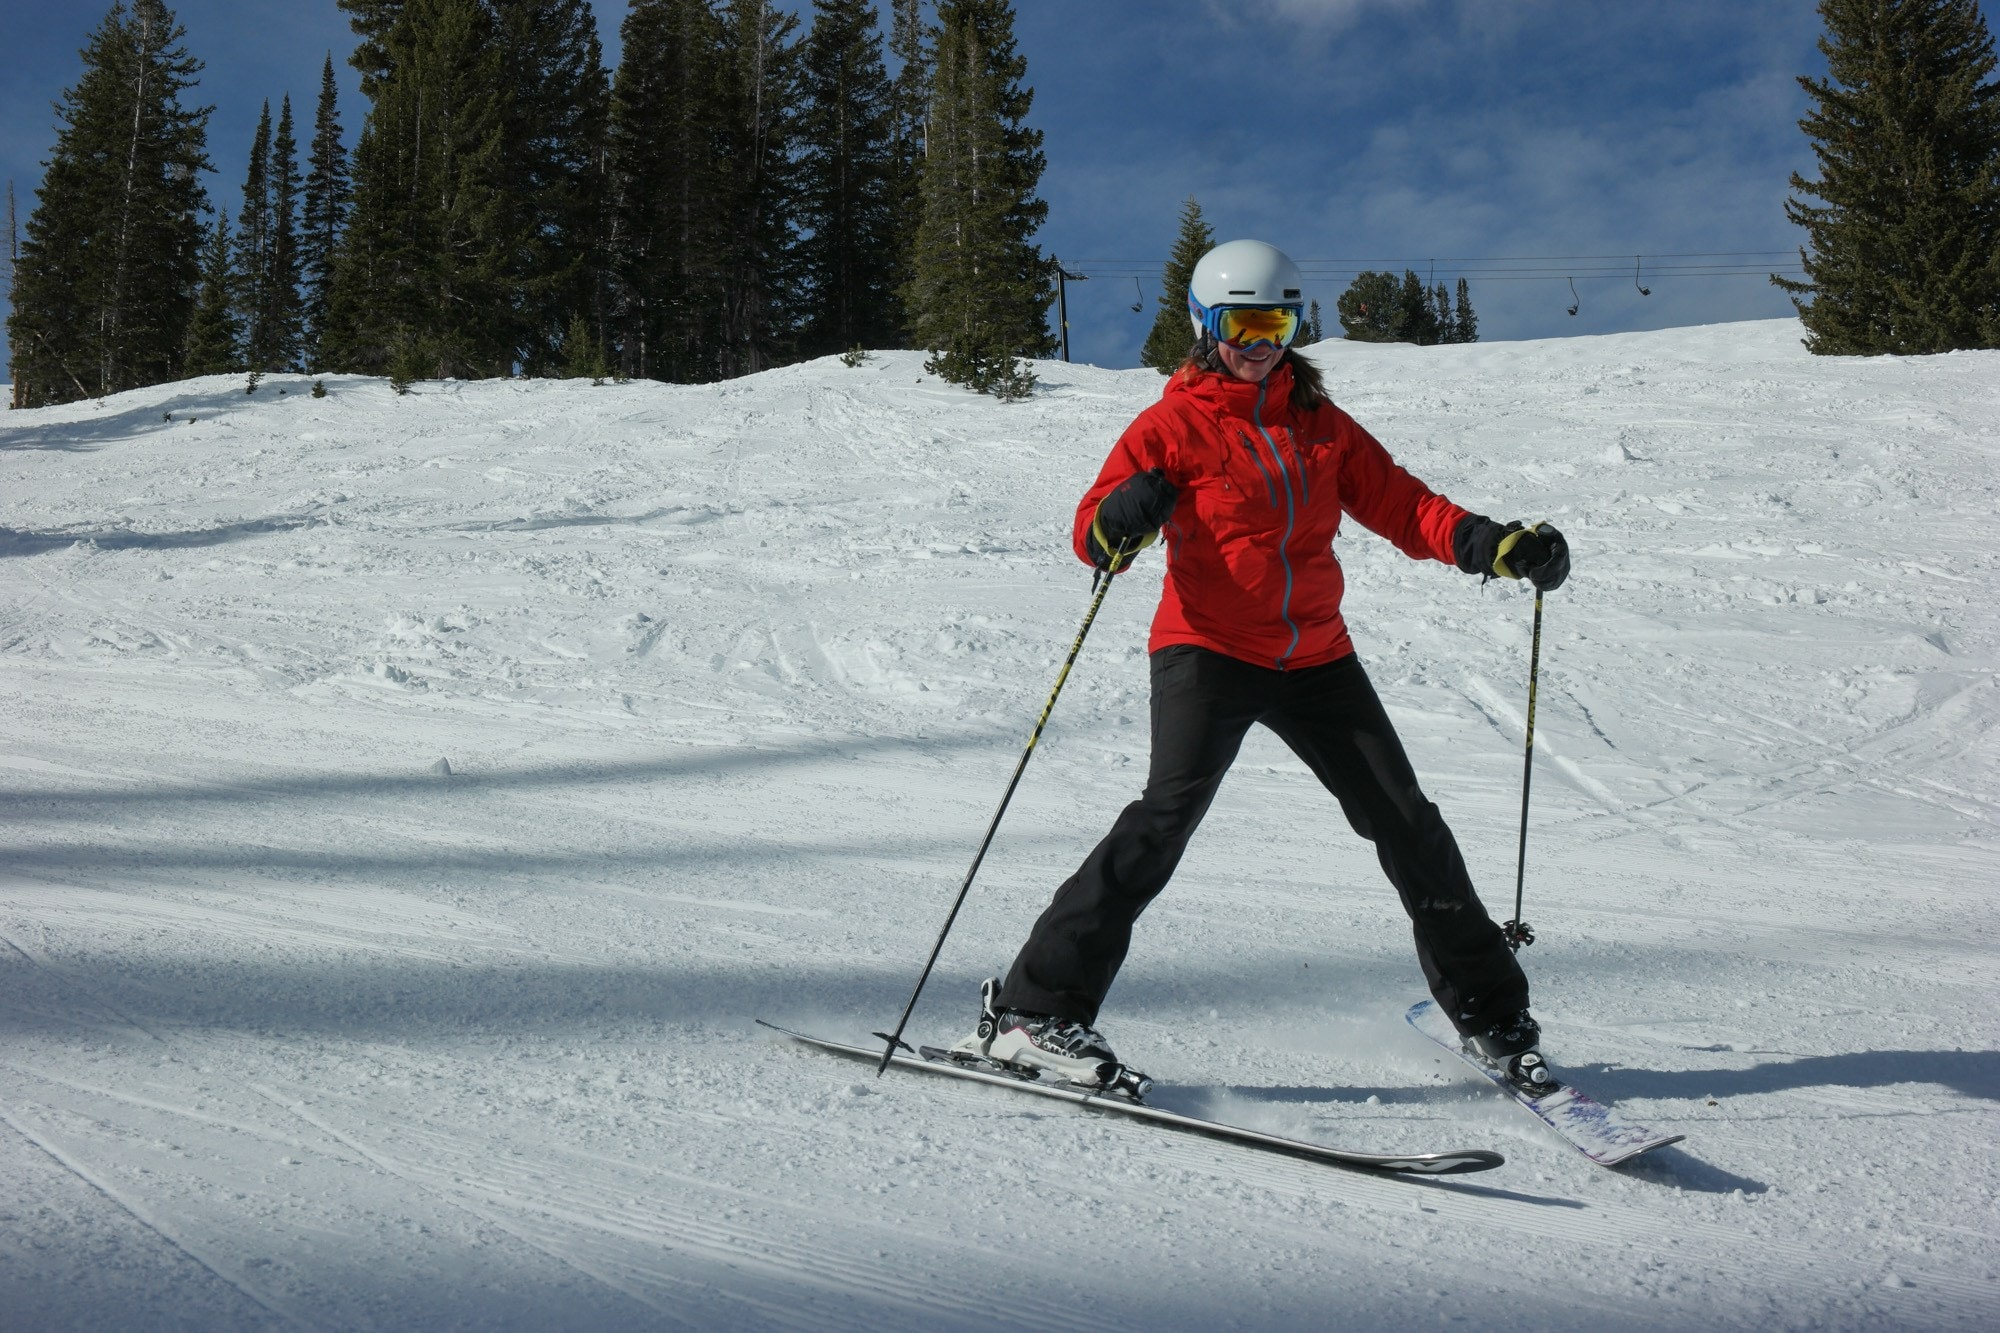 If you're a first-time skier getting ready for a day on the slopes, you probably have a lot of questions. In this blog post, we answer all of your frequenty asked questions about skiing, like how to slow down, how to get off the chairlift, how your ski boots should fit, and more.